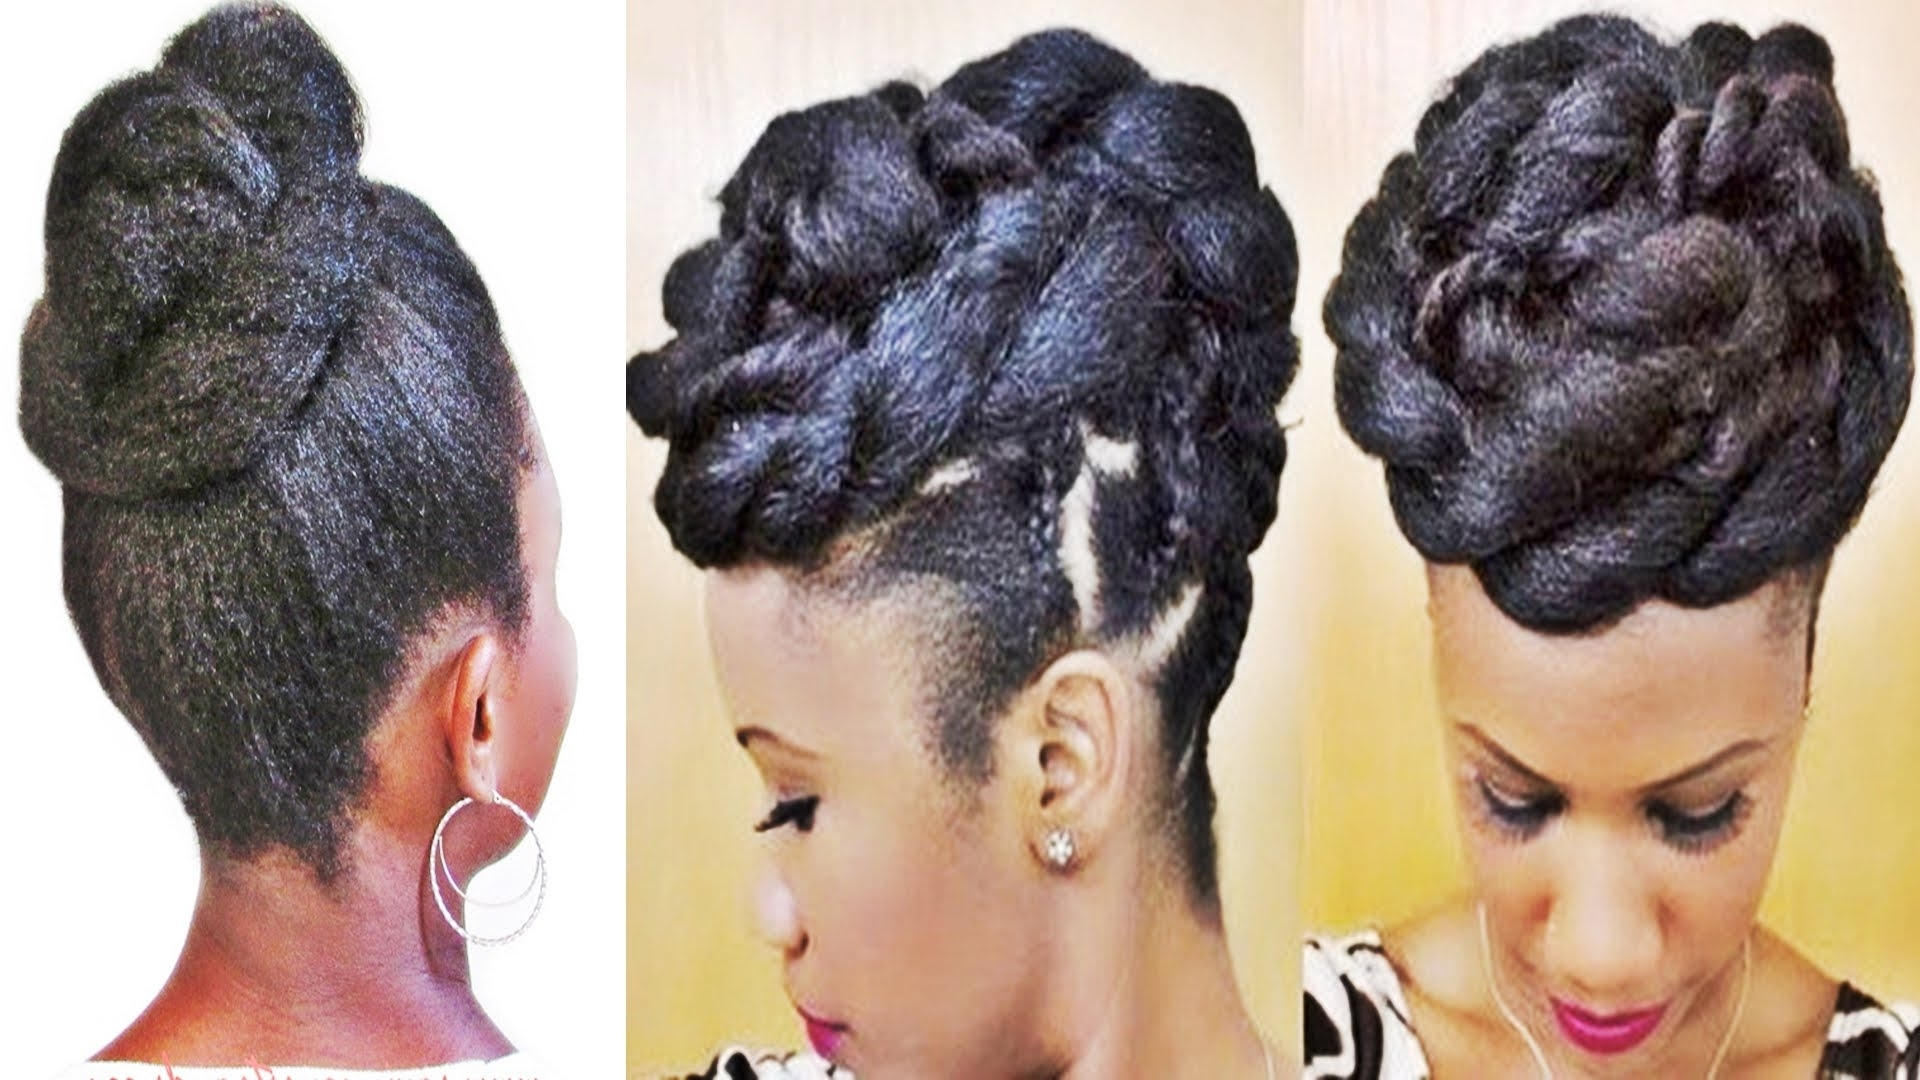 Braids And Twists Updo Hairstyle For Black Women – Youtube For Afro American Updo Hairstyles (View 11 of 15)